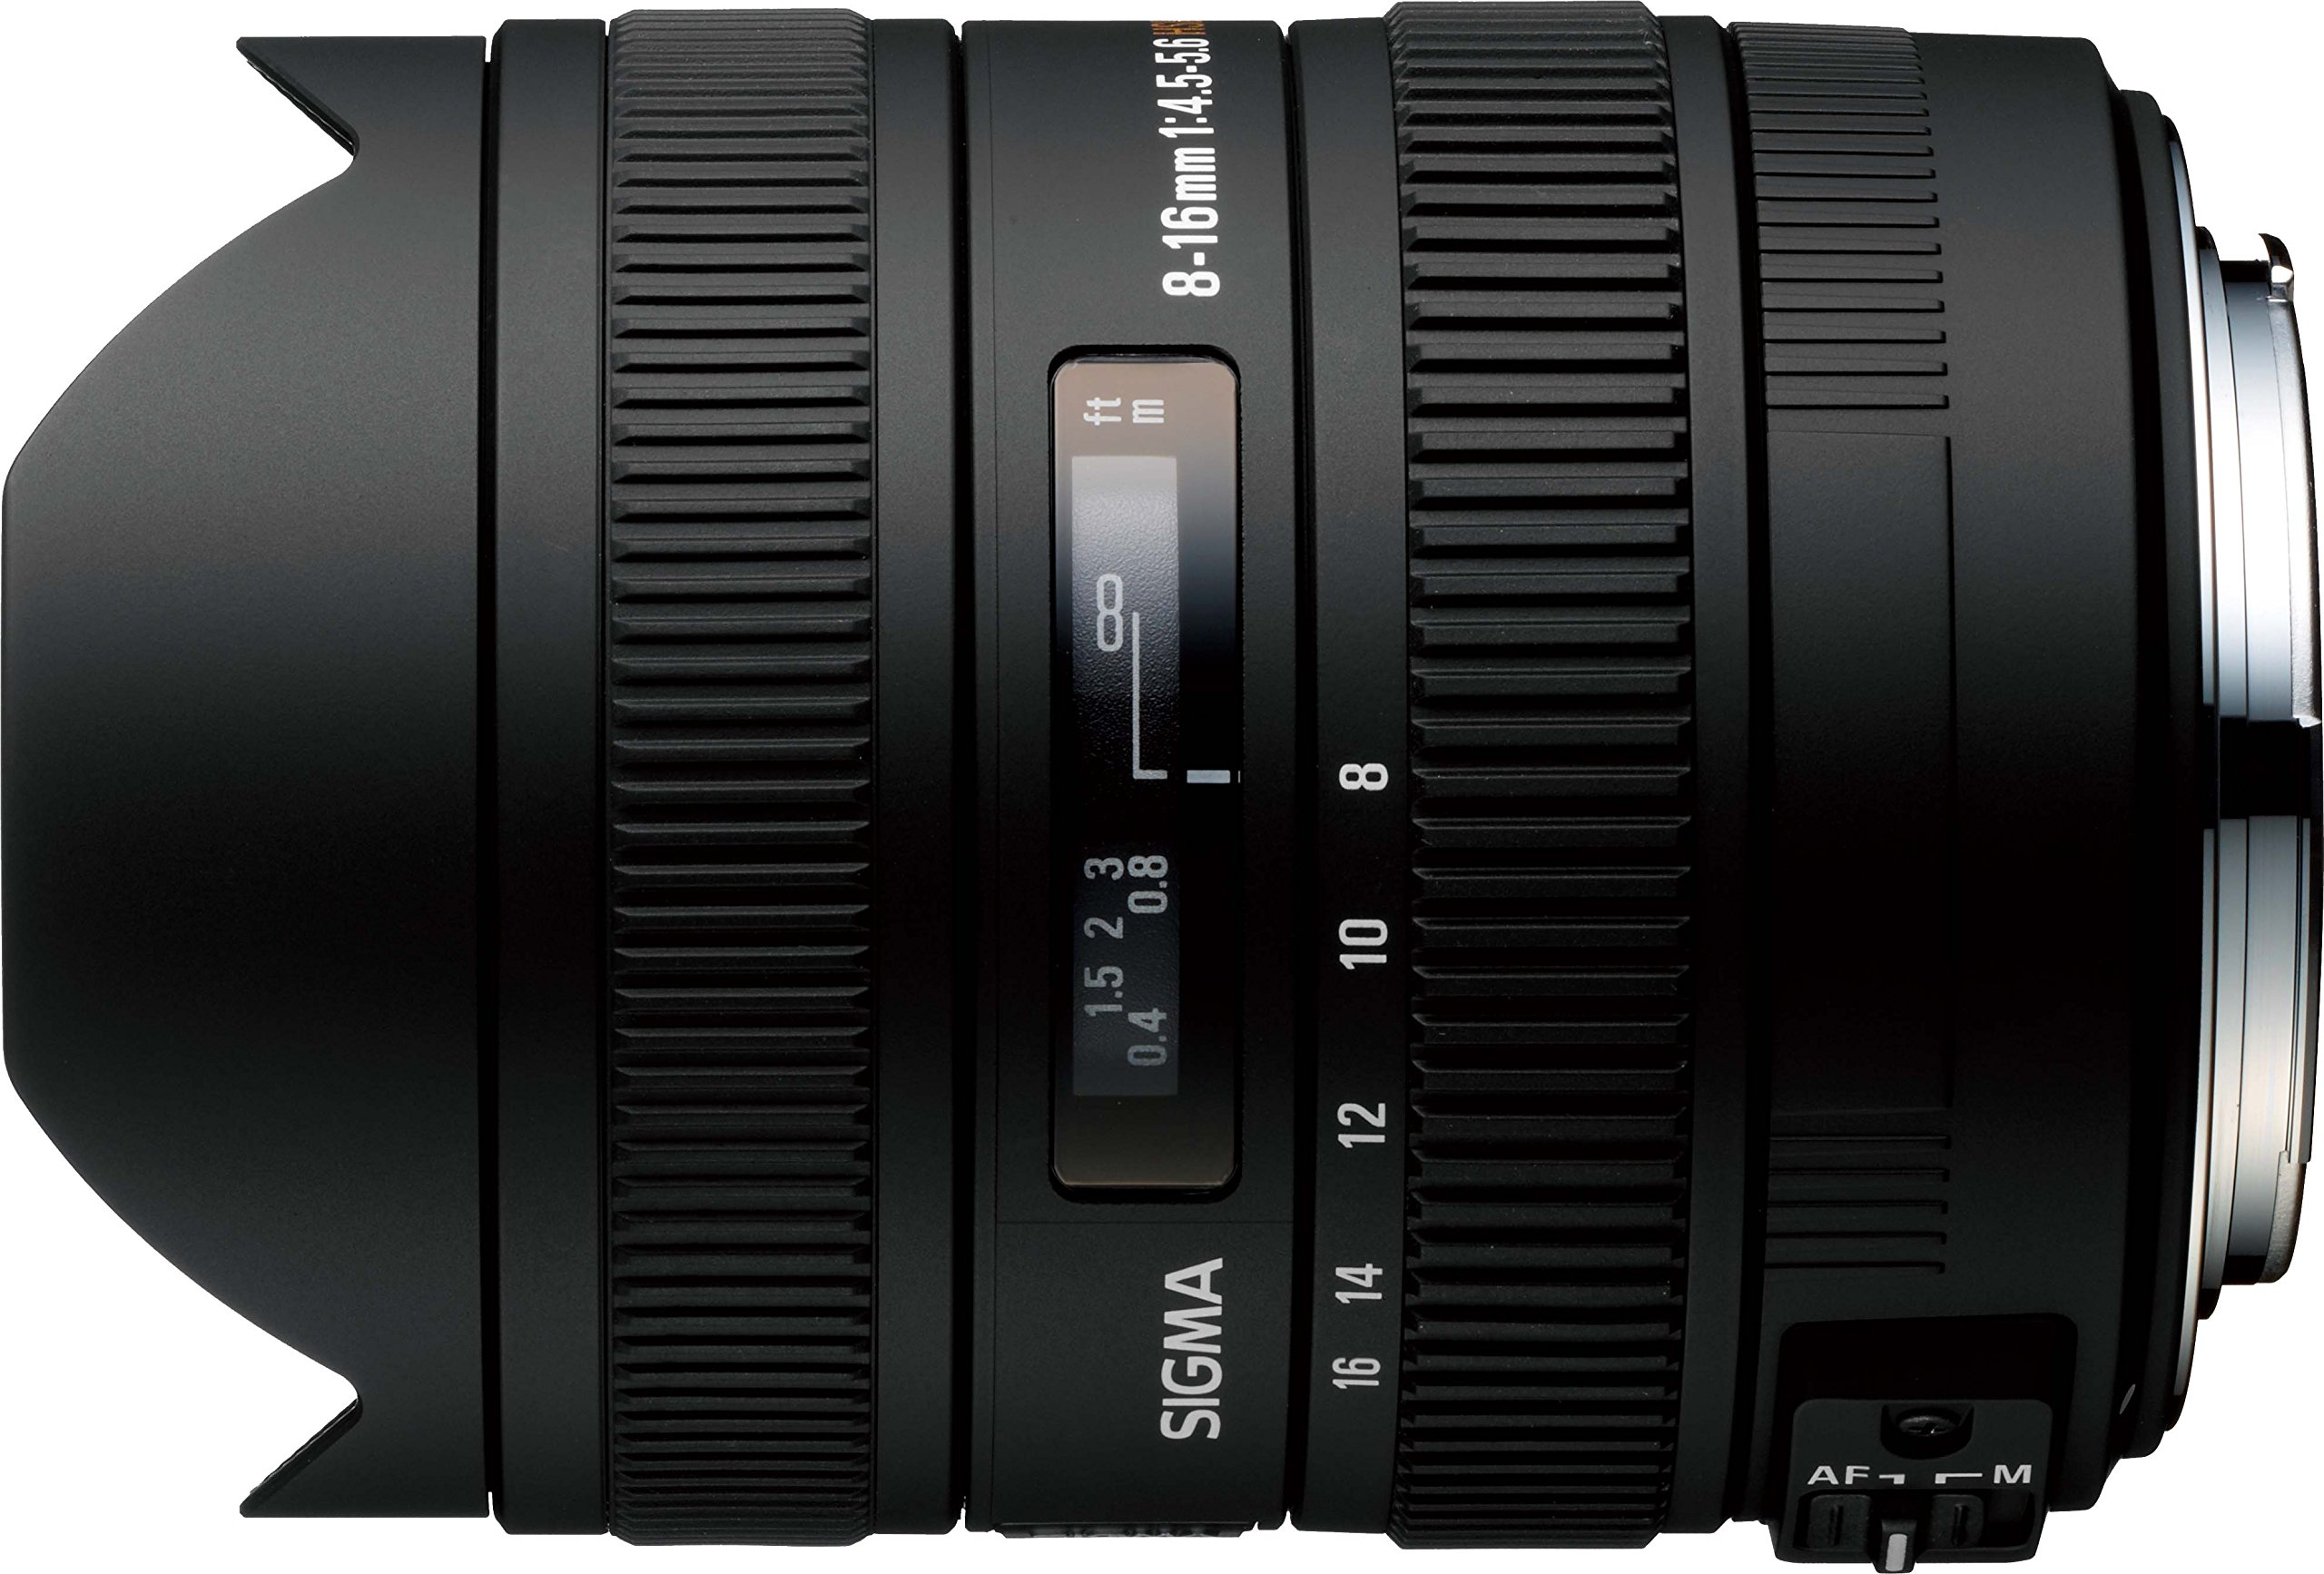 Sigma 8-16mm f/4.5-5.6 DC HSM FLD AF Ultra Wide Zoom Lens for APS-C sized Nikon Digital DSLR Camera